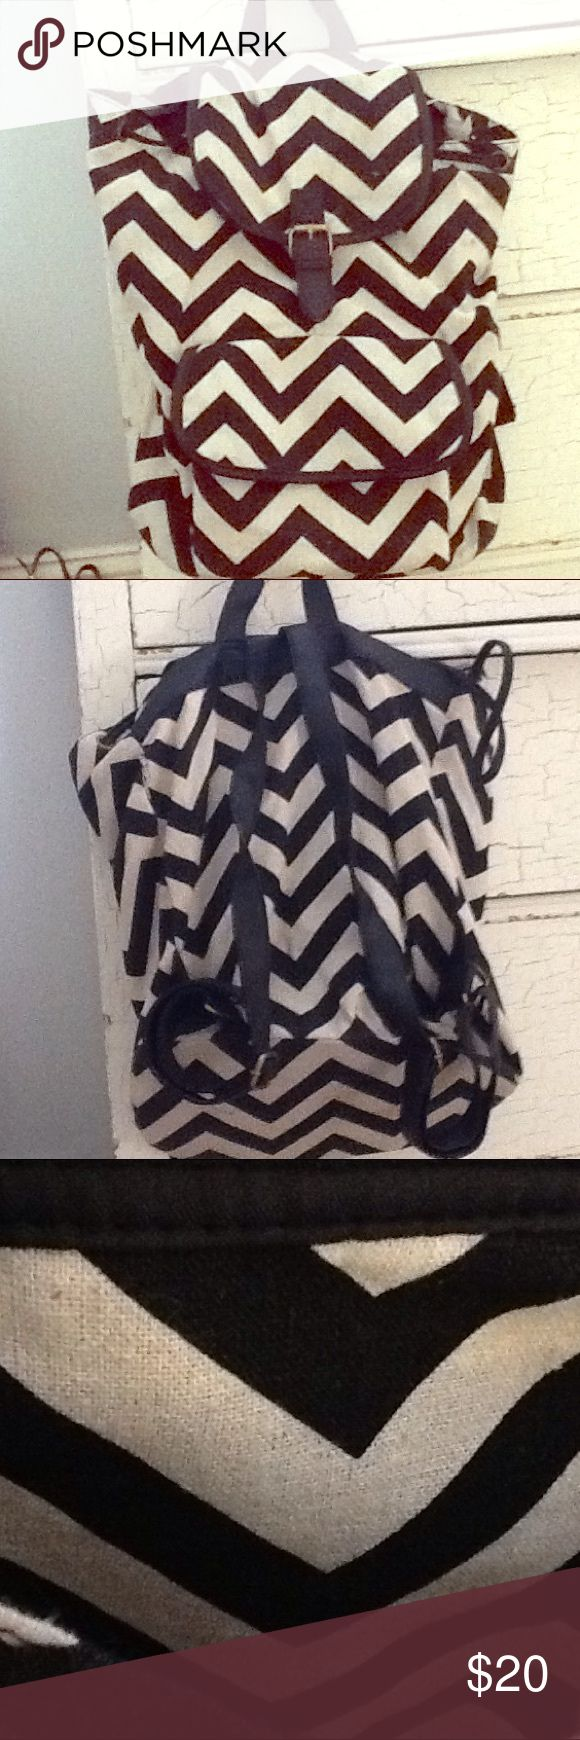 Black Chevron Backpack It has two pockets, the main one and the outer pocket with a zip up compartment and two other pockets inside. It is super cute and roomy. Bags Backpacks